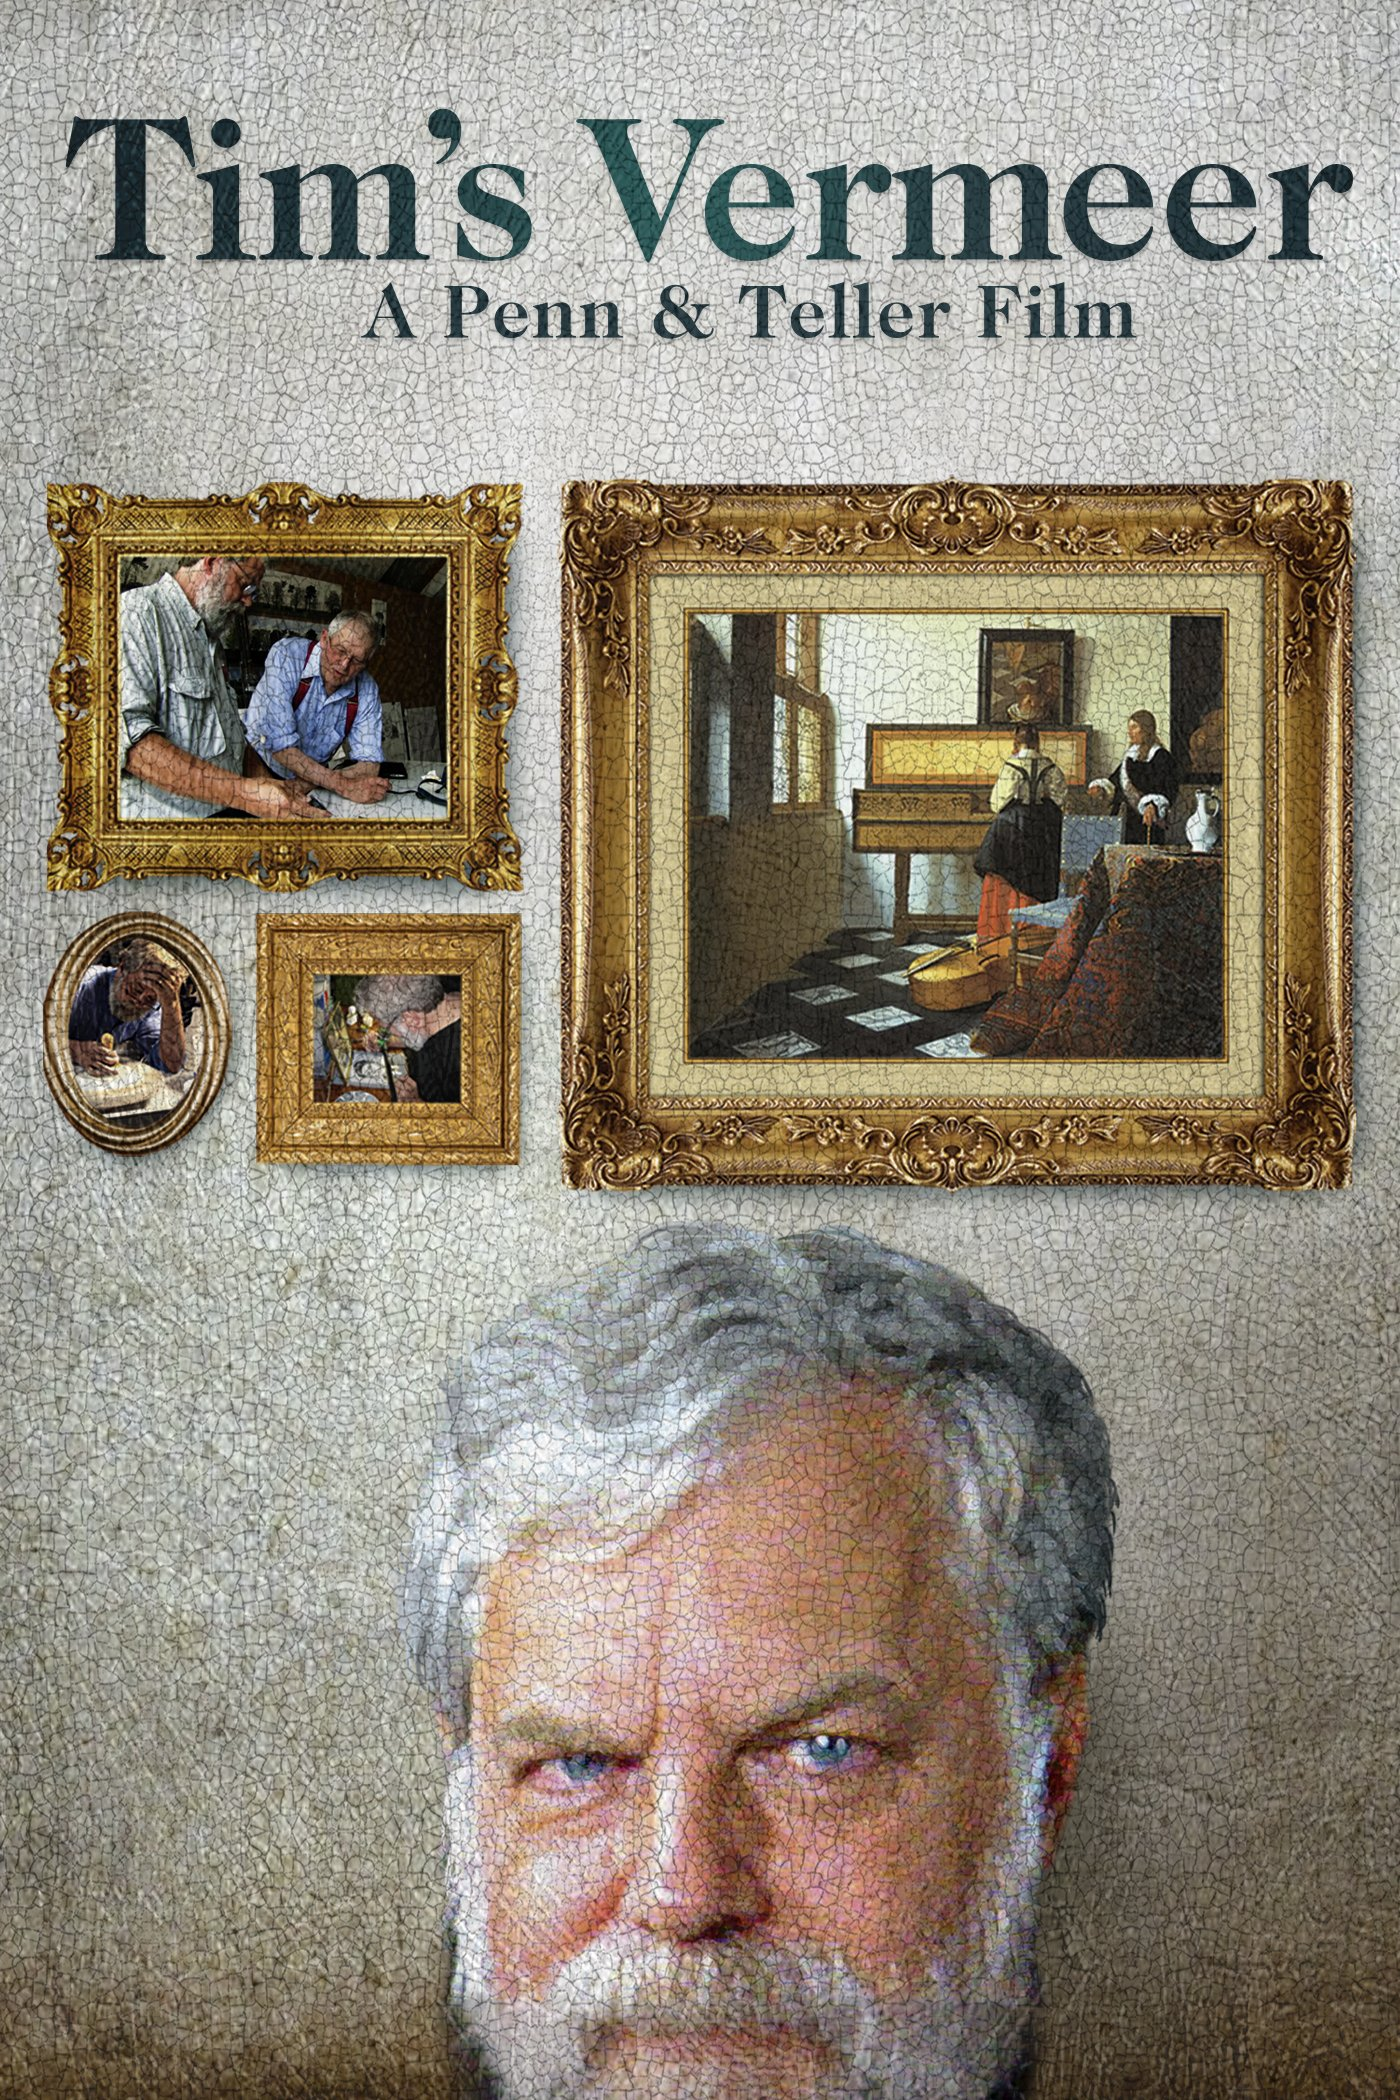 Download image 1700s woman portrait pc android iphone and ipad - Amazon Com Tim S Vermeer Martin Mull Teller Penn Jillette Farley Ziegler Amazon Digital Services Llc